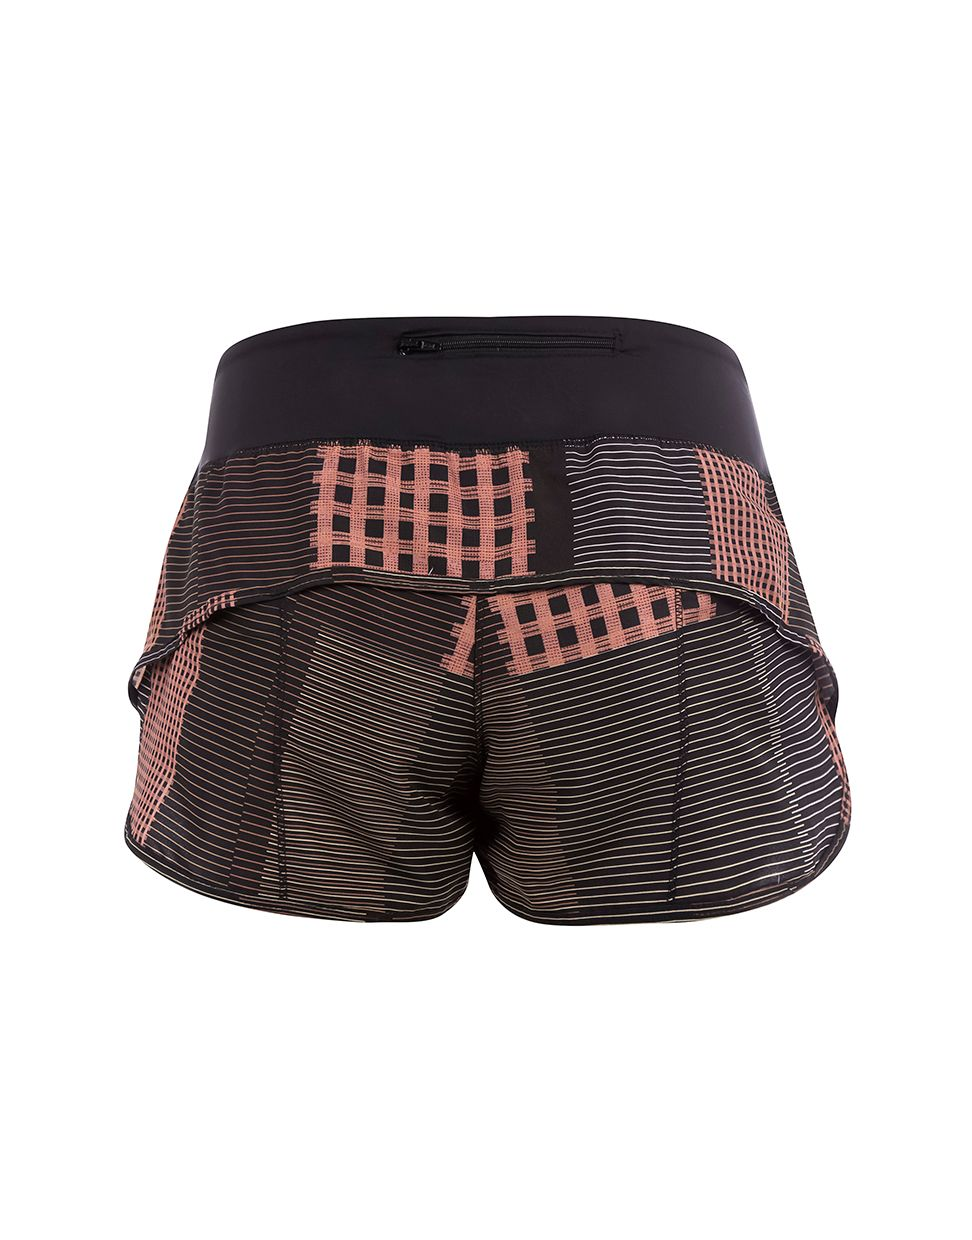 SHORTS BASIC ESTAMPADO -ESTAMPA ALFAIAT